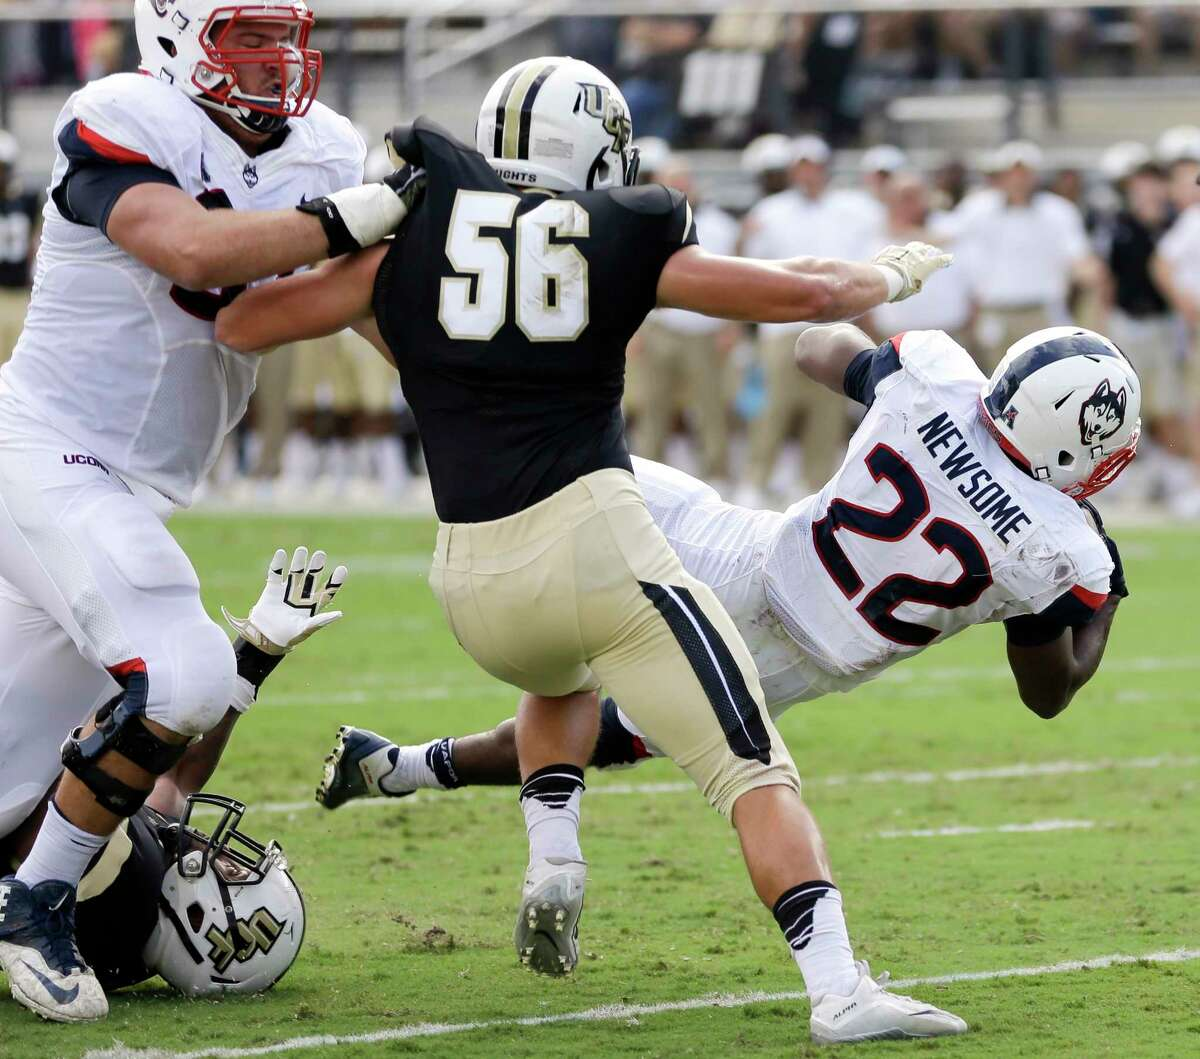 UConn running back Arkeel Newsome was named the AAC Special Teams Player of the Week.